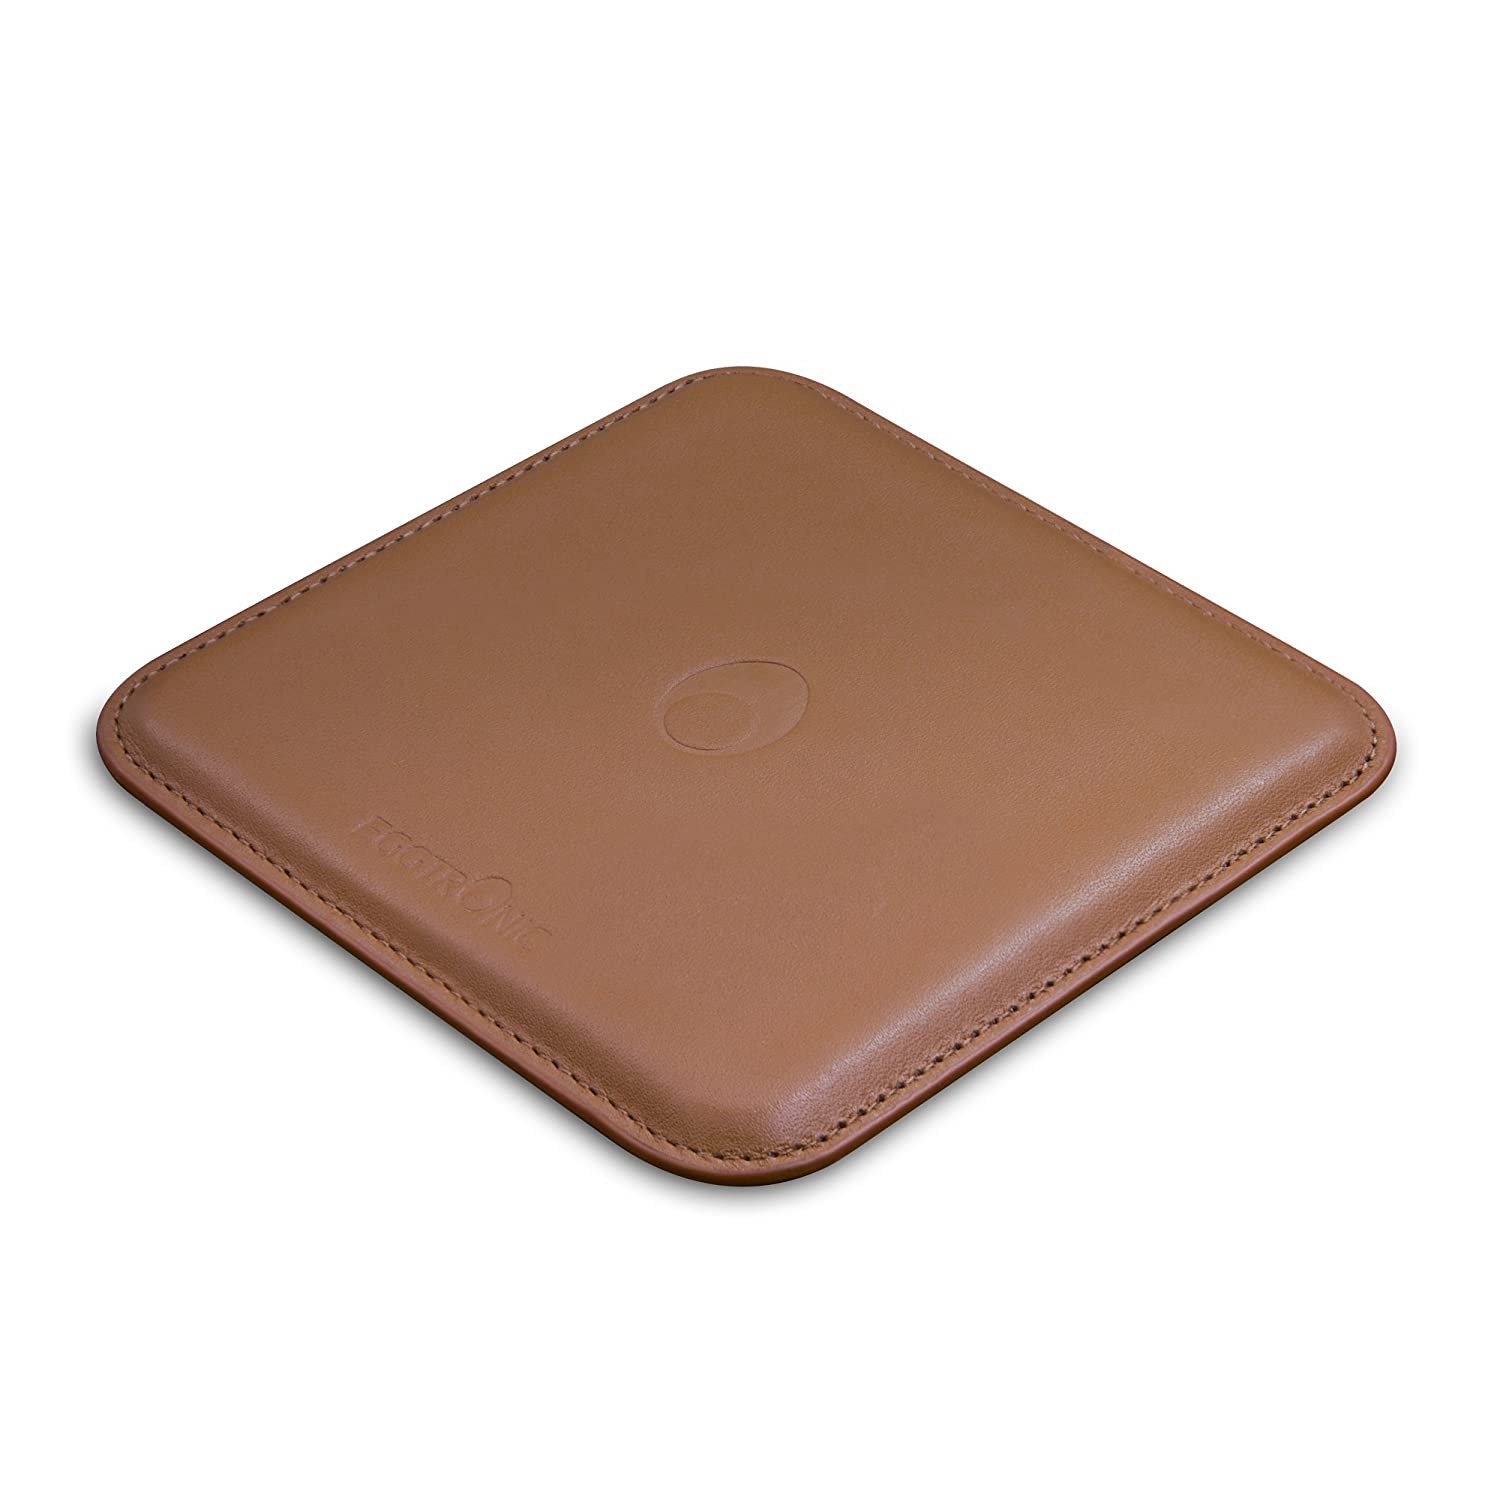 Eggtronic Fast Charging Wireless Pad in Genuine Leather (Compatible with Galaxy S9, S9 Plus, iPhone X, iPhone 8, iPhone 8 Plus) (Saddle Brown)